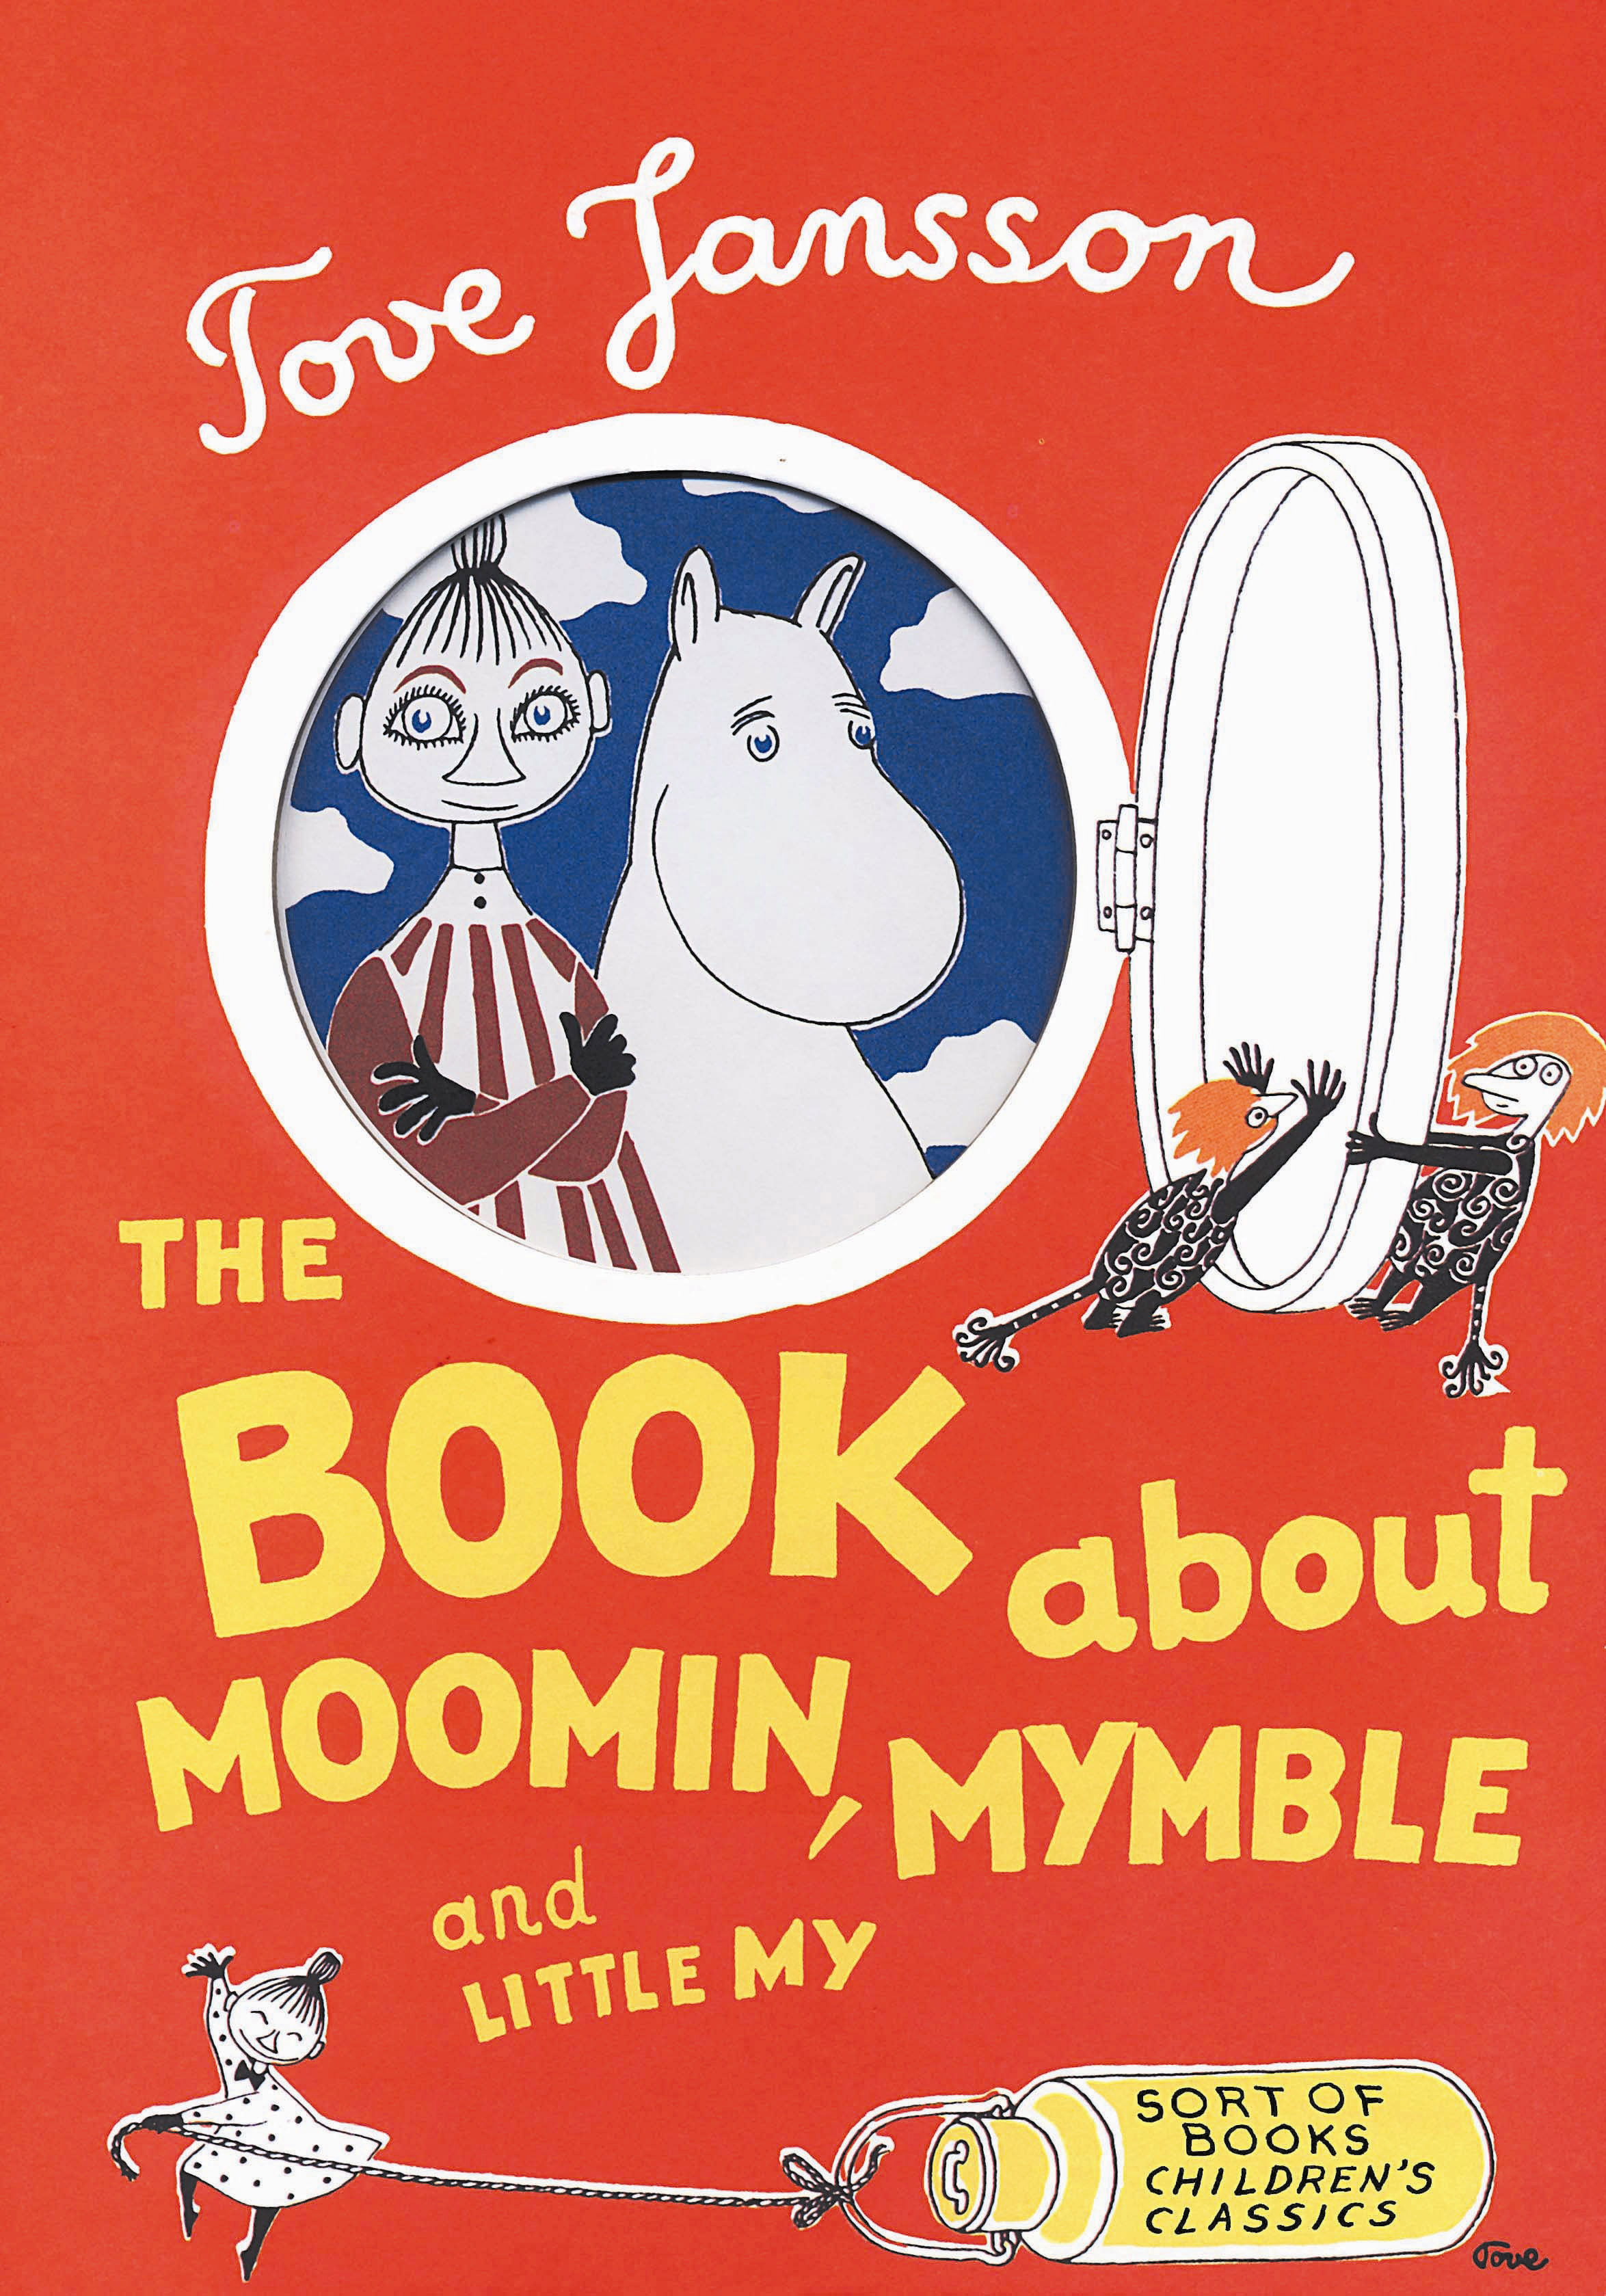 The Book About Moomin, Mymble and Little My by Tove Jansson, Sophie Hannah, ISBN: 9780953522743